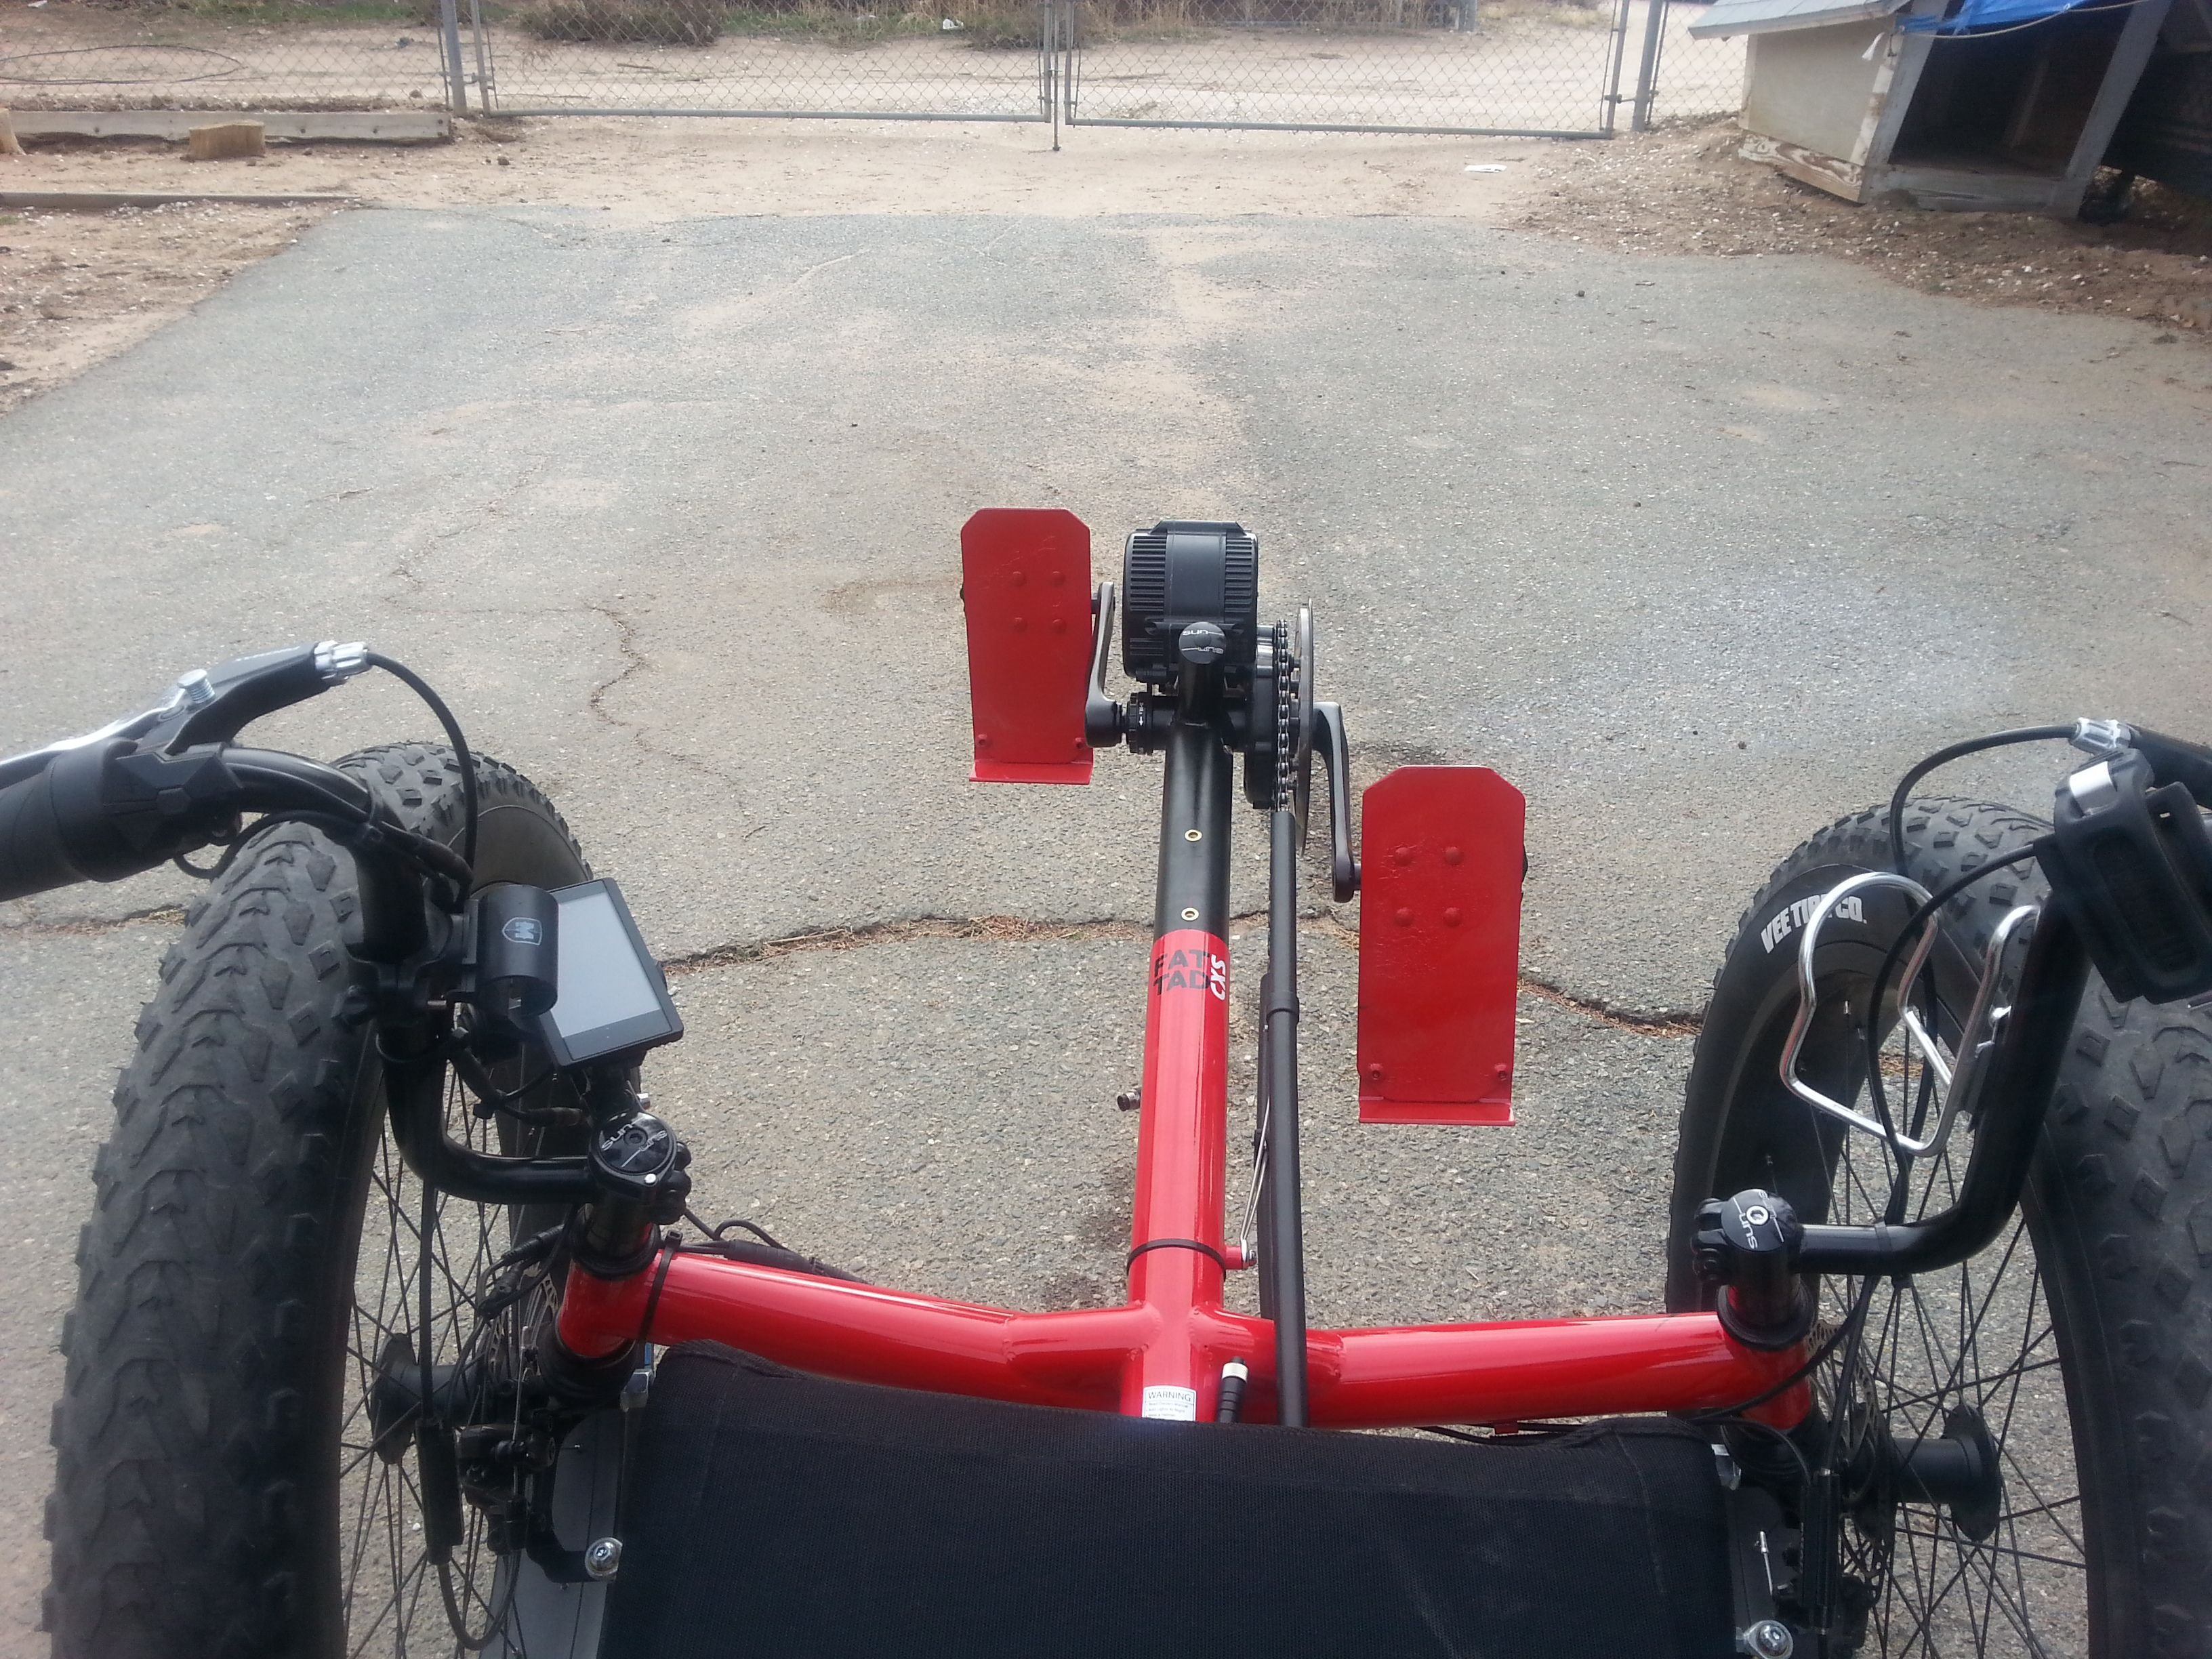 Look from back to front pedals.